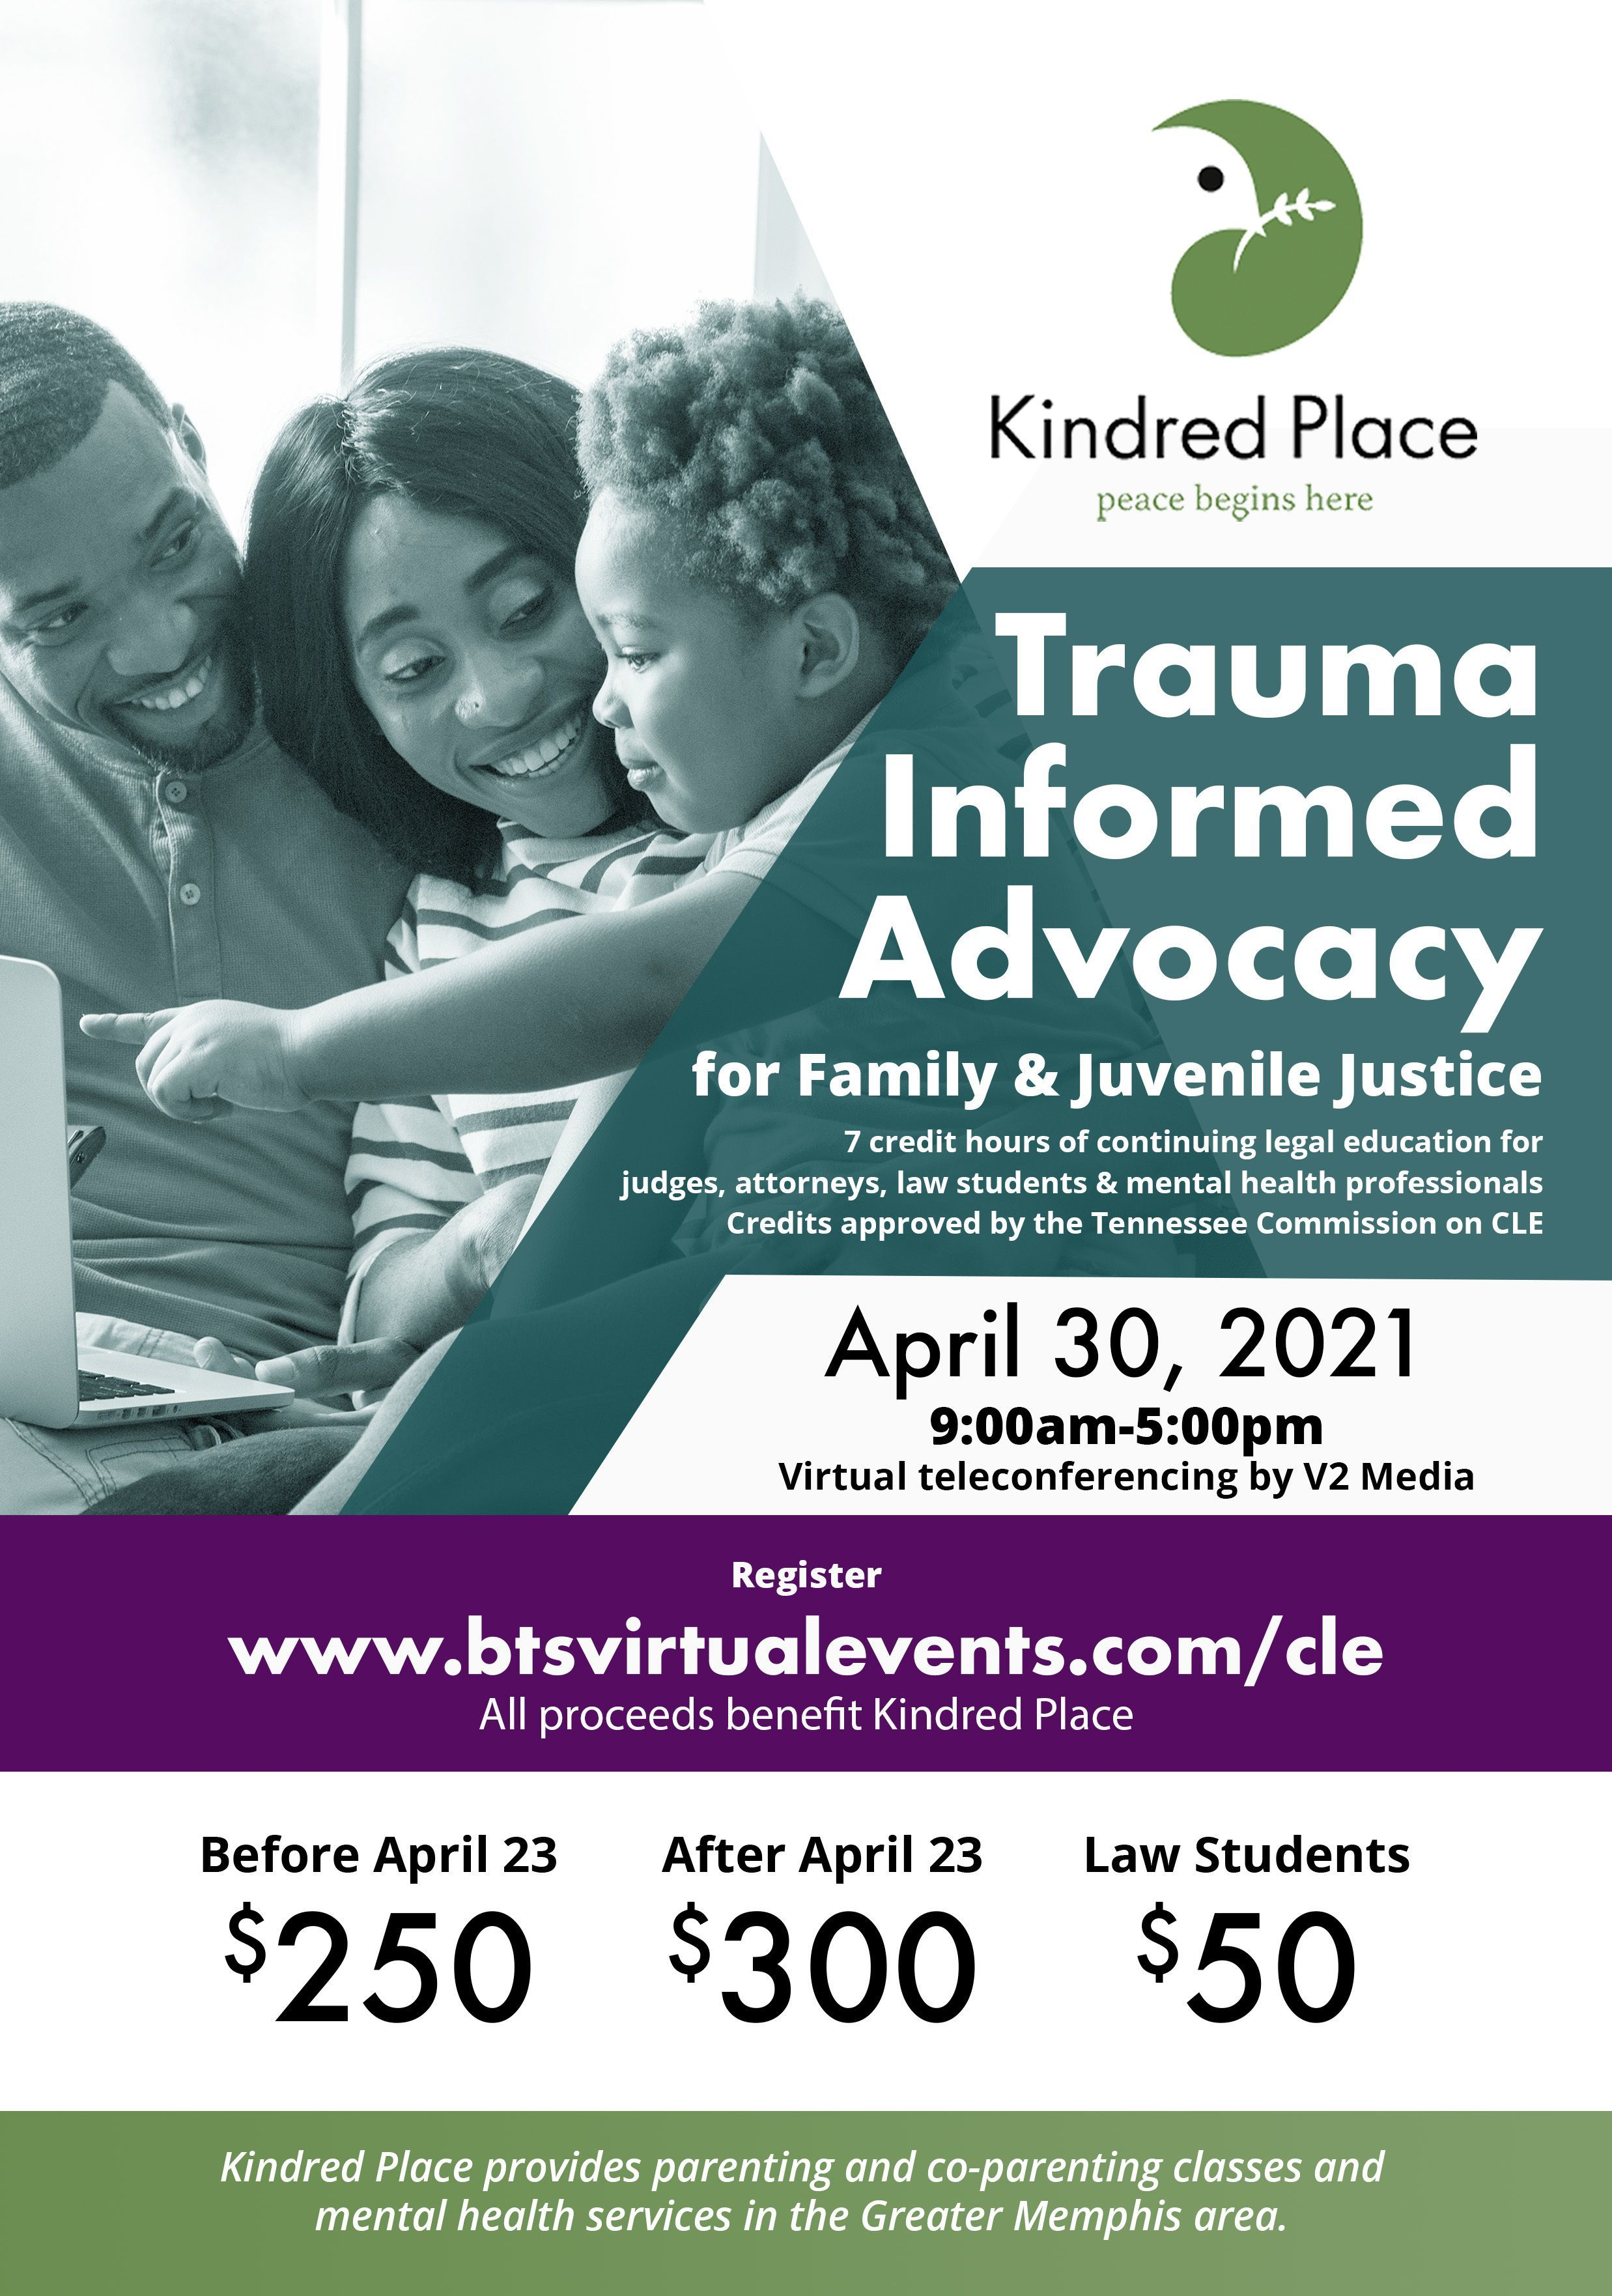 Trauma-Informed Advocacy for Family & Juvenile Justice CLE Summit